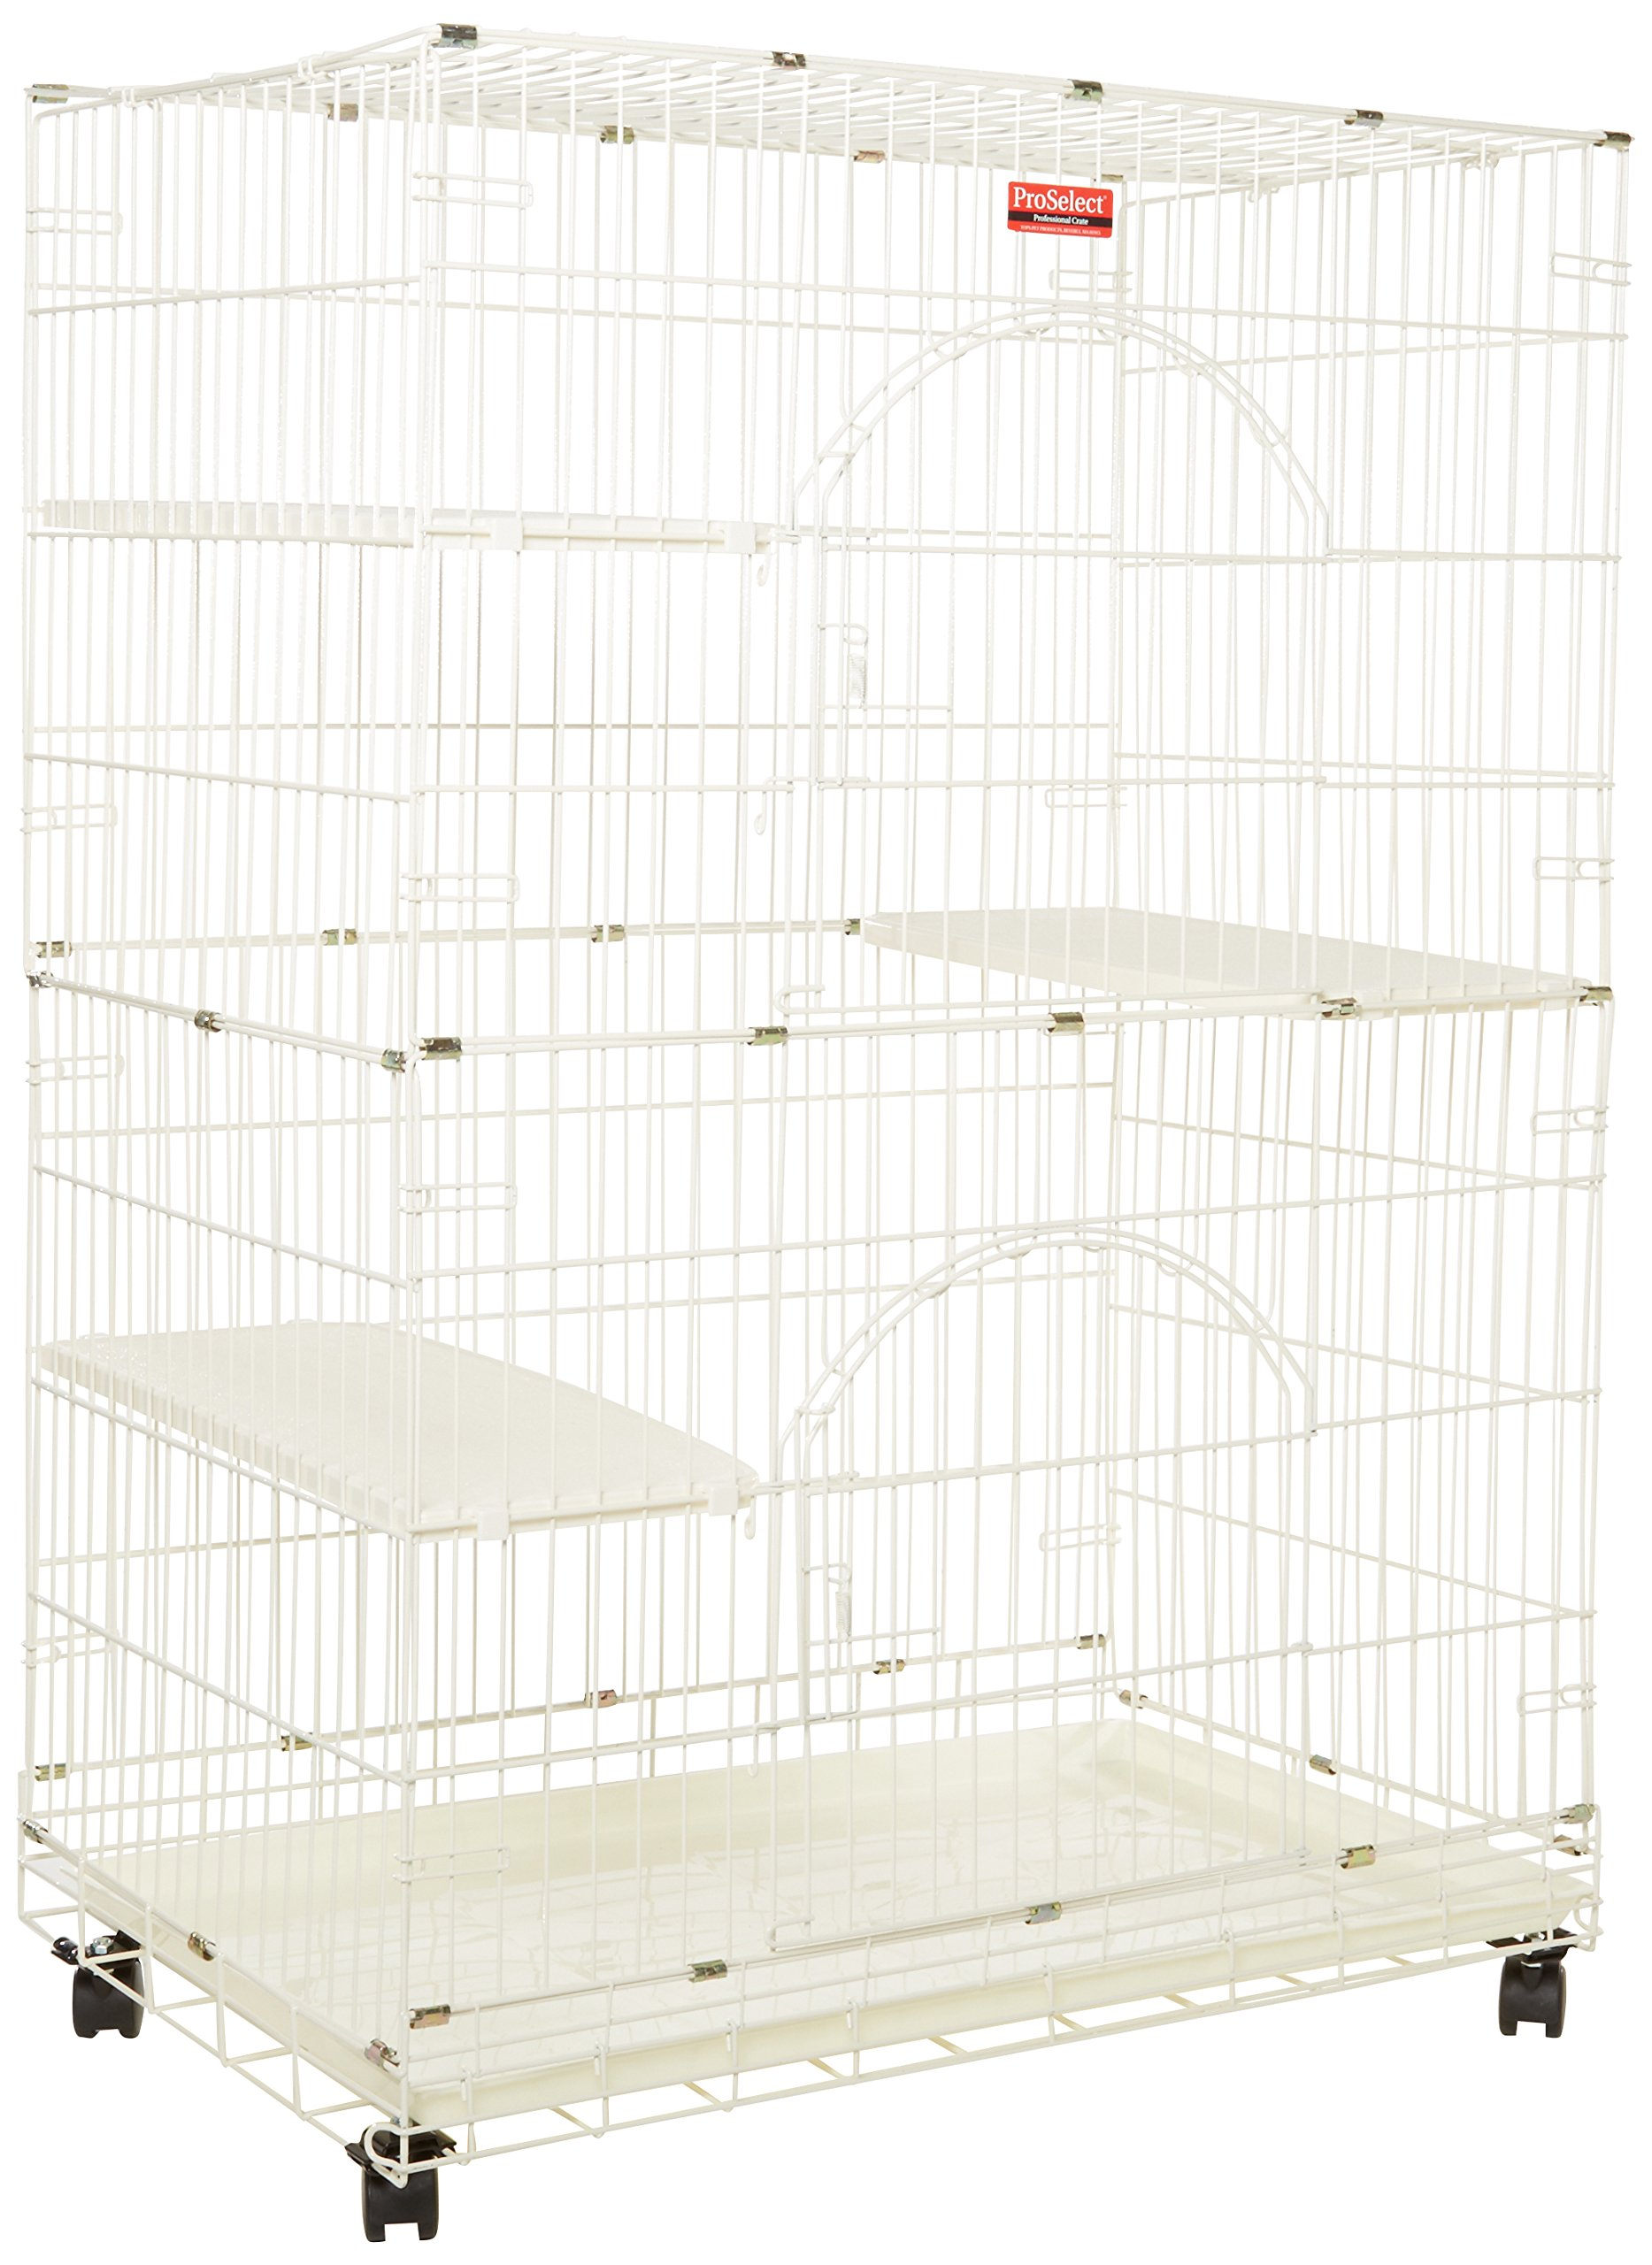 """ProSelect White Foldable Cat Cage – 8- and 12-Gauge Wire with Dimensions of 35.5"""" x 22.25"""" and 48"""" Height With Casters"""